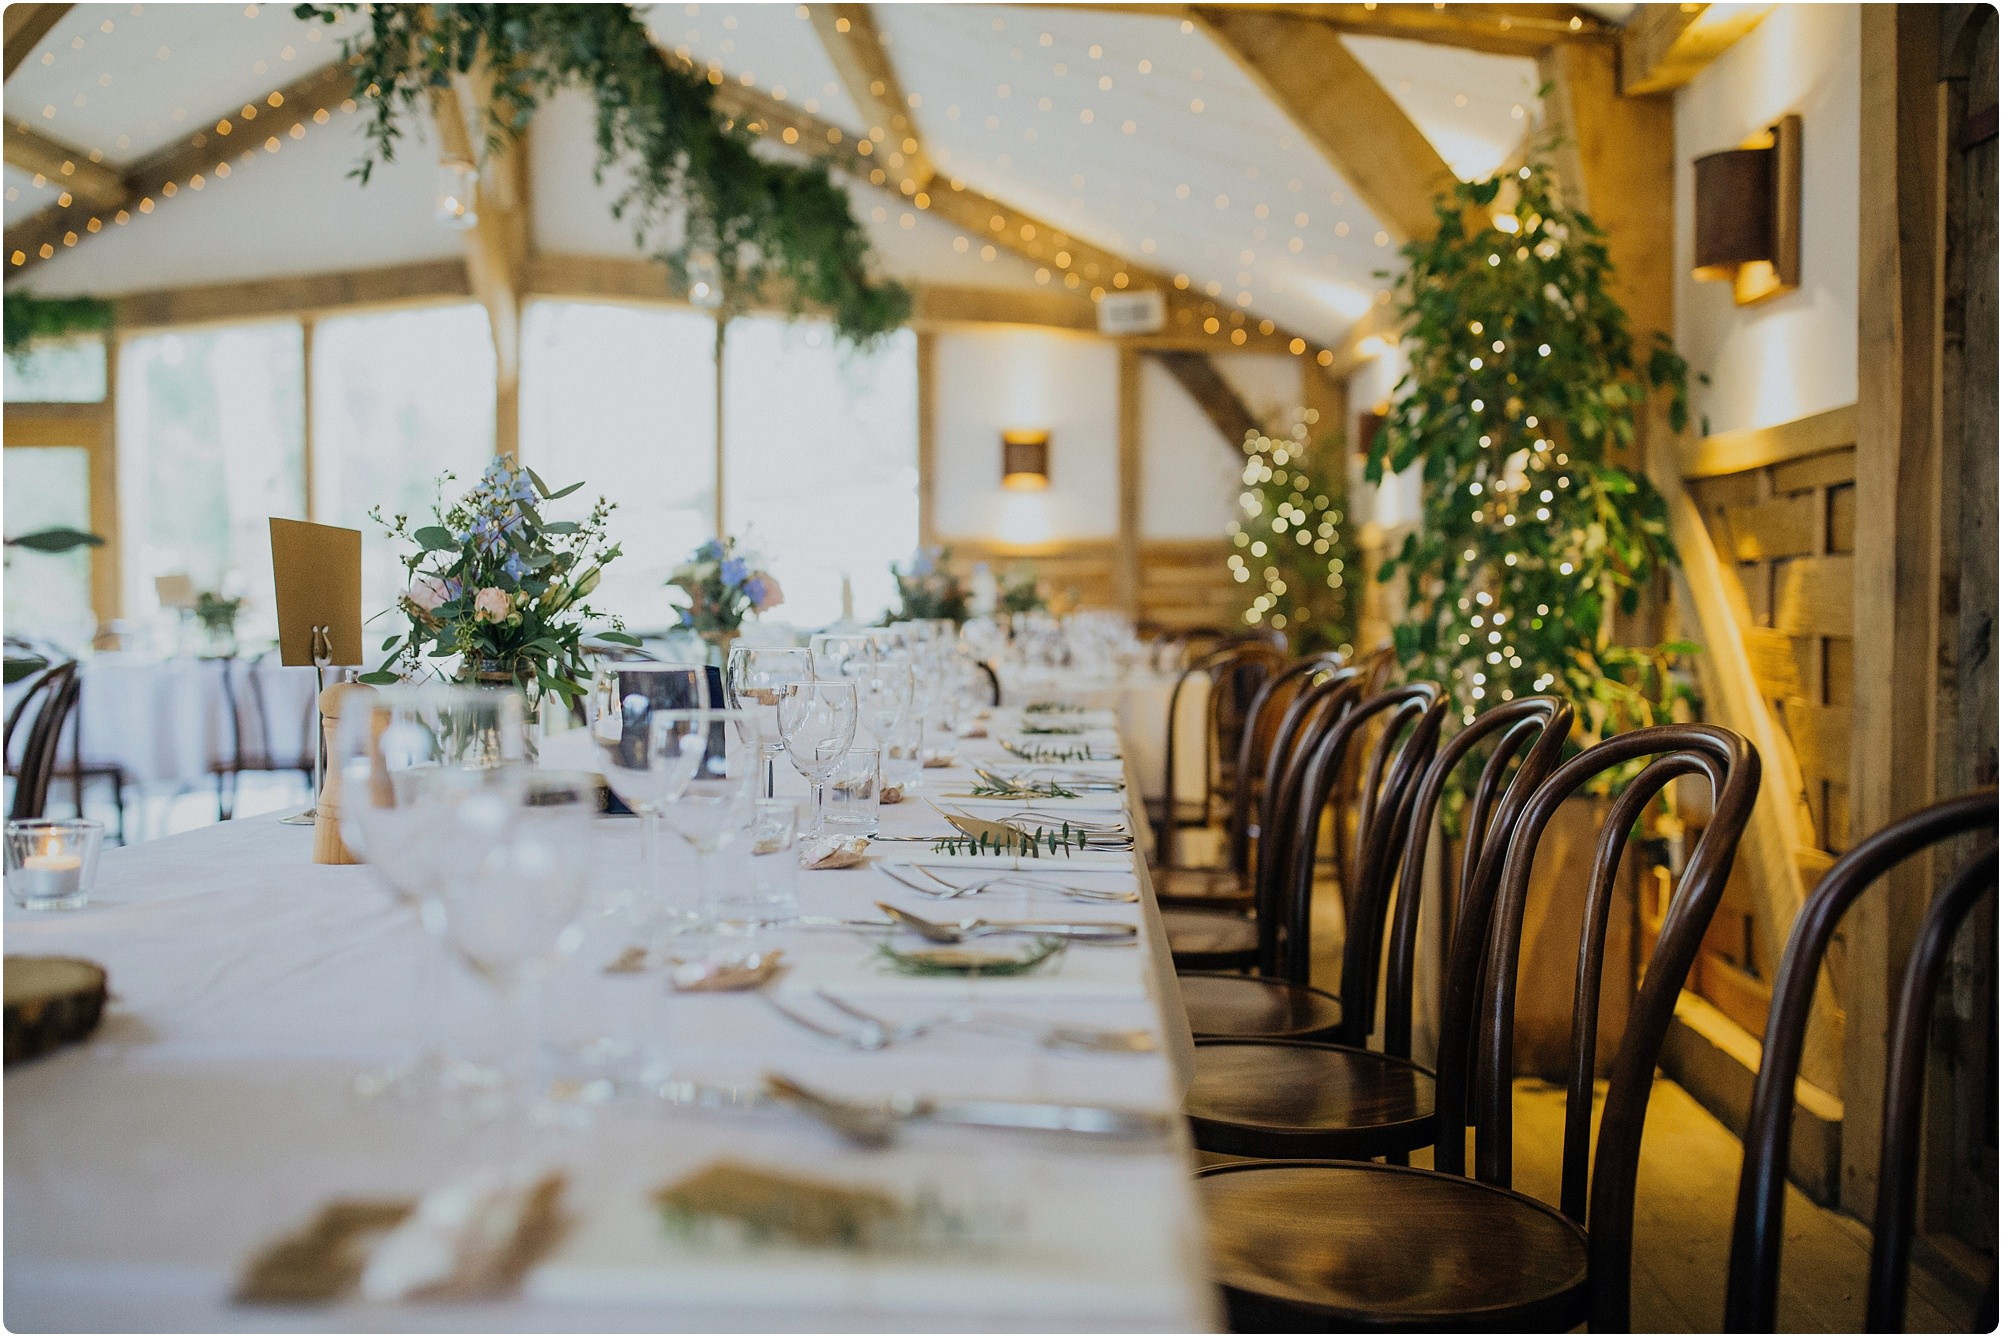 table set up for a rustic theme at a Cripps Barn Winter Wedding